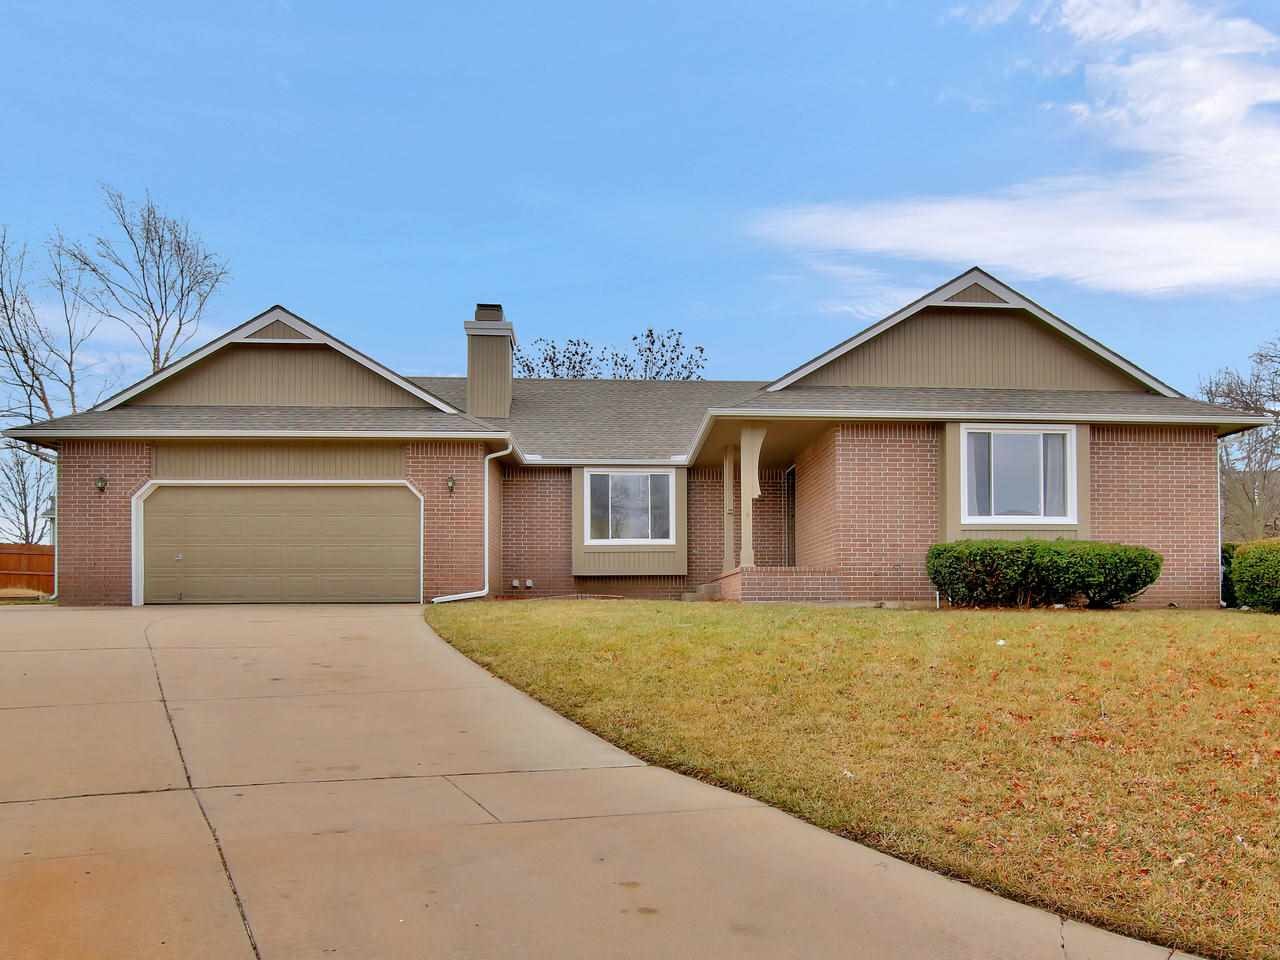 Spacious 4BR, 3.5BA ranch located on a cul-de-sac lot.  Offering many features including vaulted ceilings, 2 WBFP w/gas starter, main flr laundry, 2-car gar w/extra parking on the side, WO LL, large mstr suite has walk-in closet & mstr bath includes separate shower, jetted tub, & vanity with 2 sinks.  Several new updates include some windows replaced, new carpeting & paint.